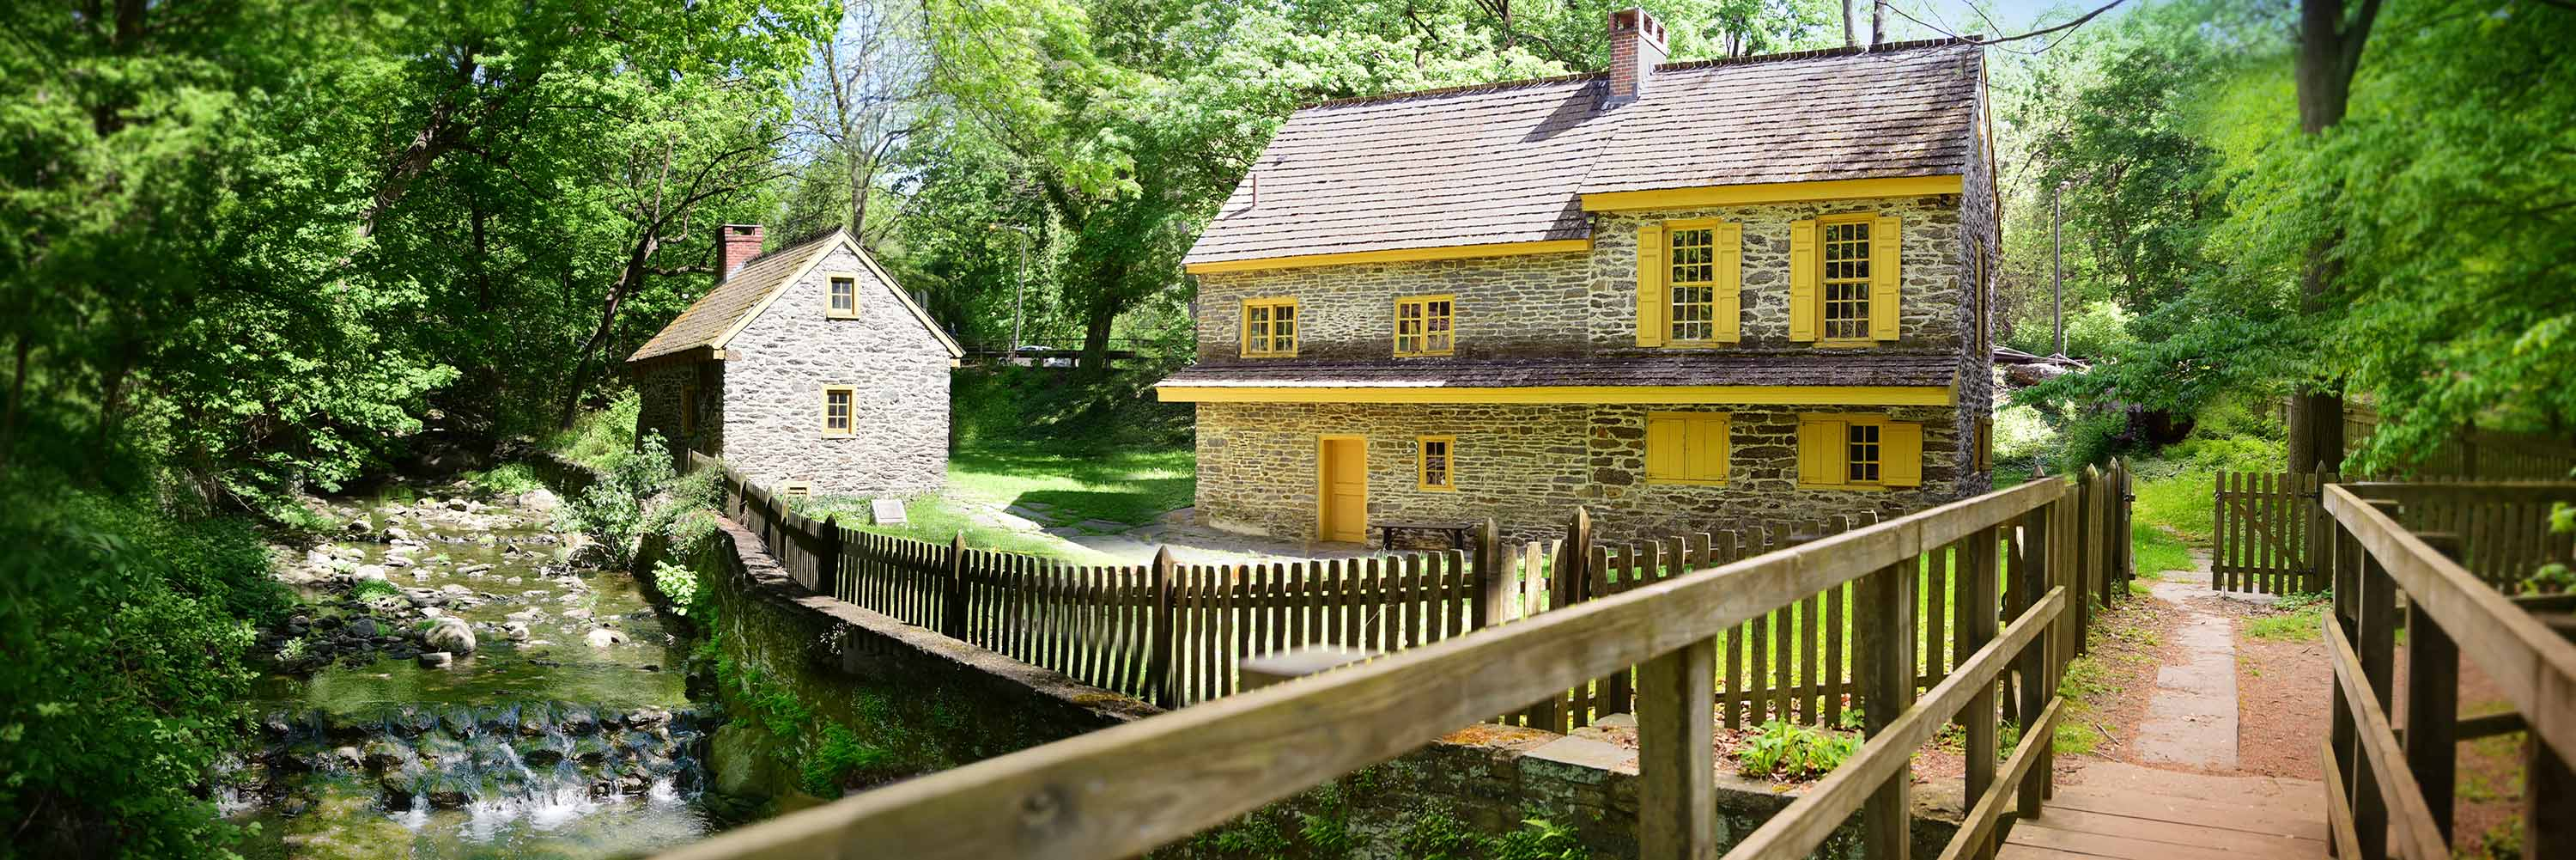 Rittenhouse Homestead and Bakehouse along Paper Mill Run